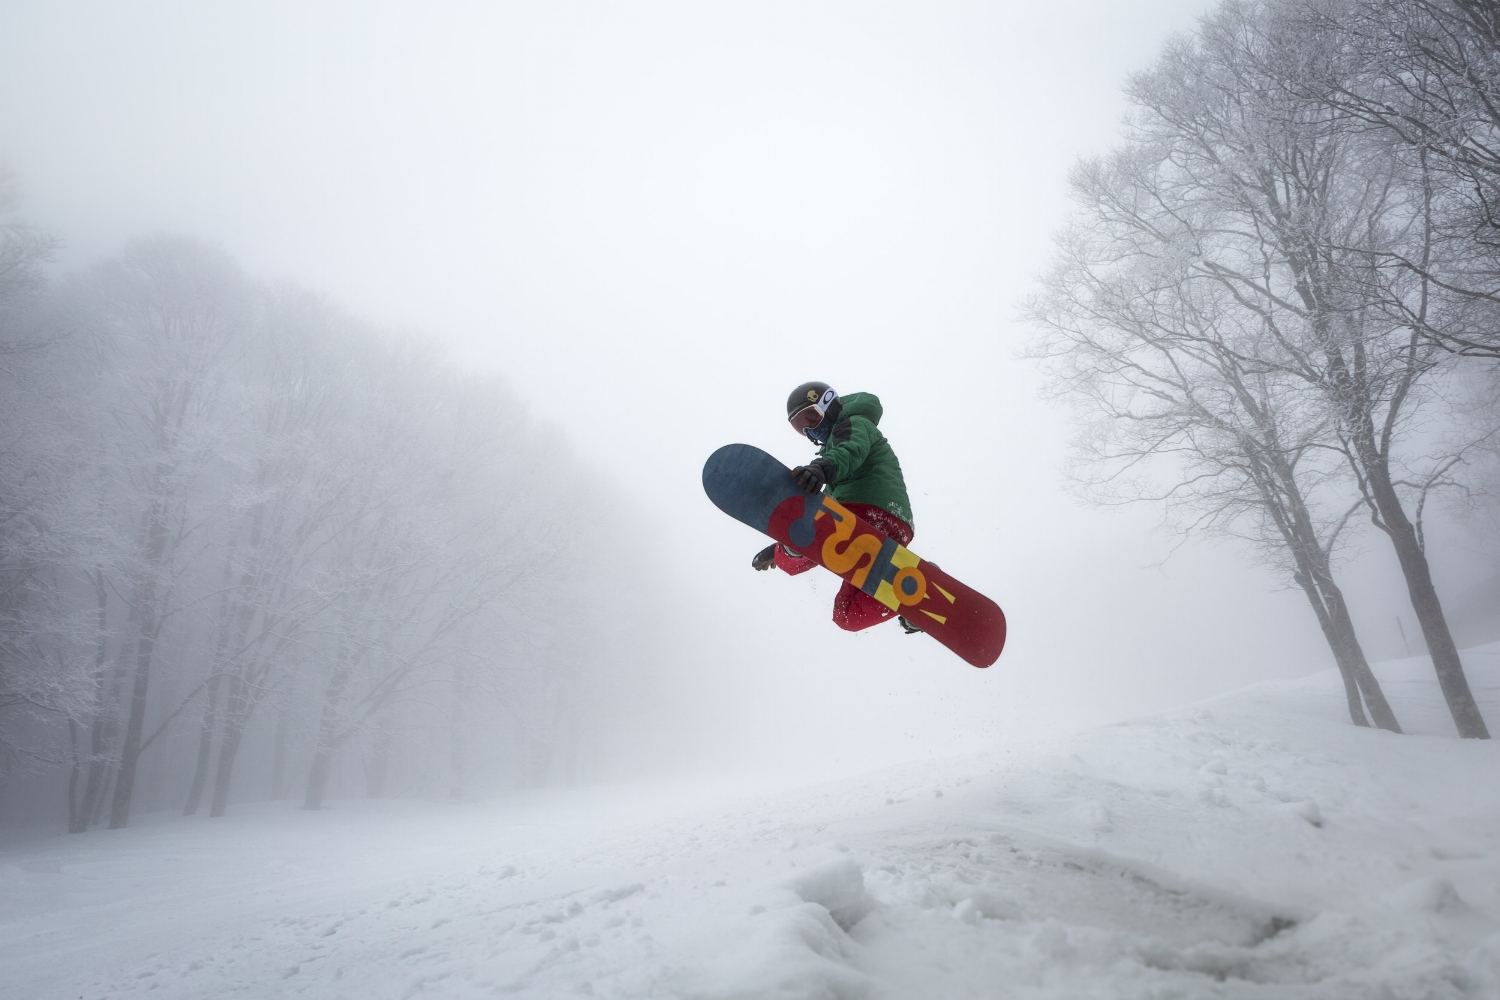 Landon Goerzen popping a side hit at Ikenotaira Resort in Myoko-kogen, Nagano, Japan.